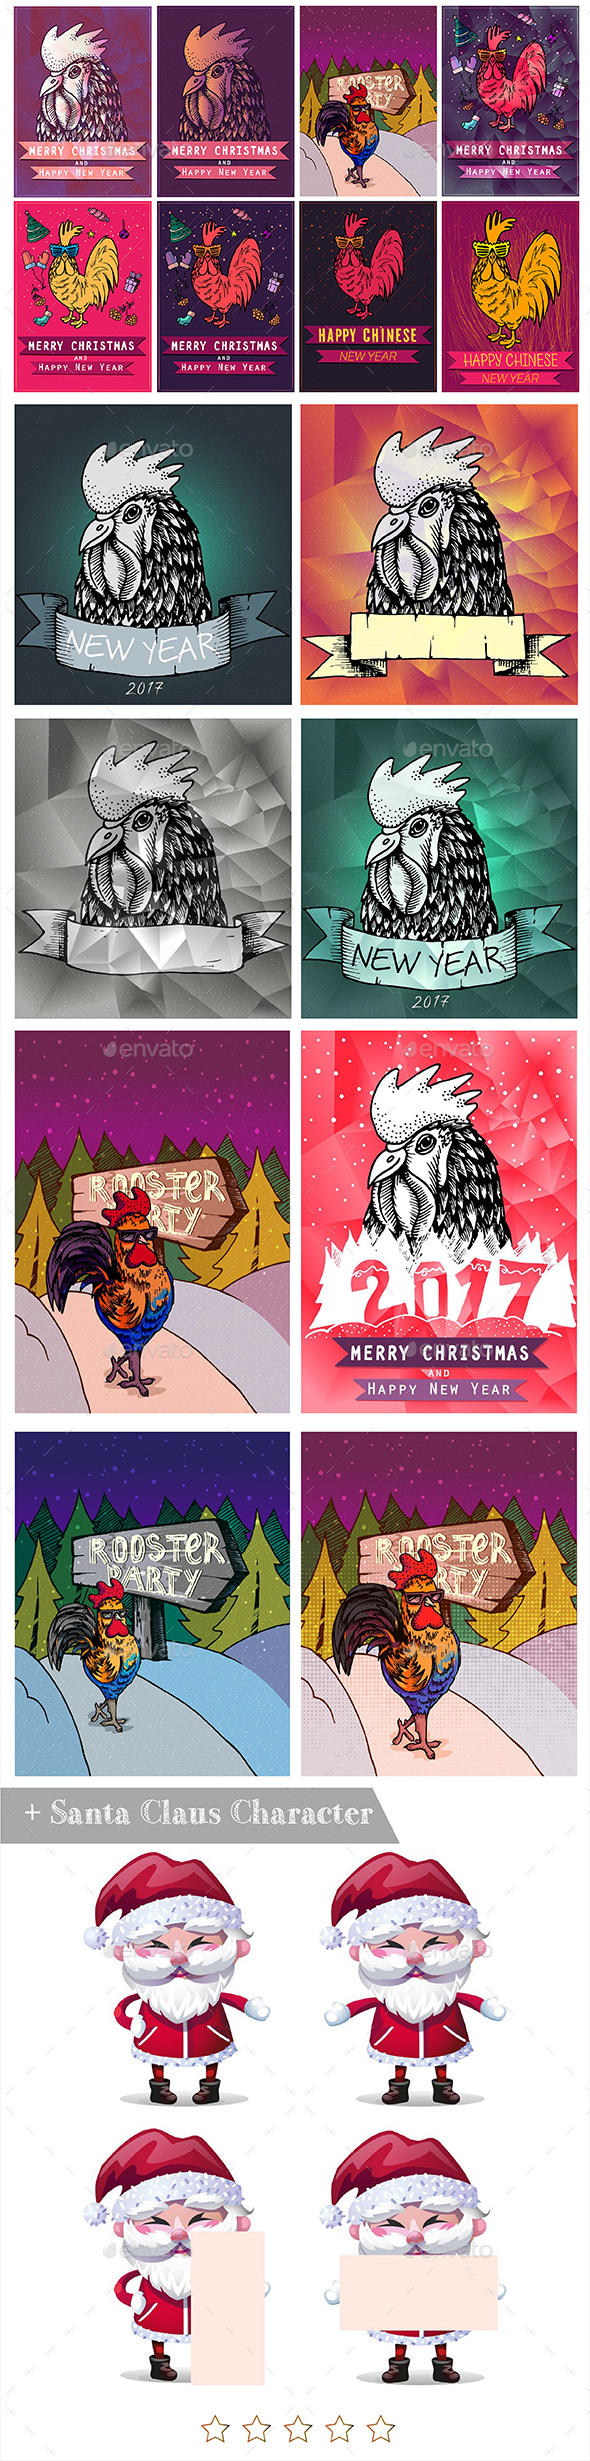 2017 Christmas & New Year Graphics Pack I